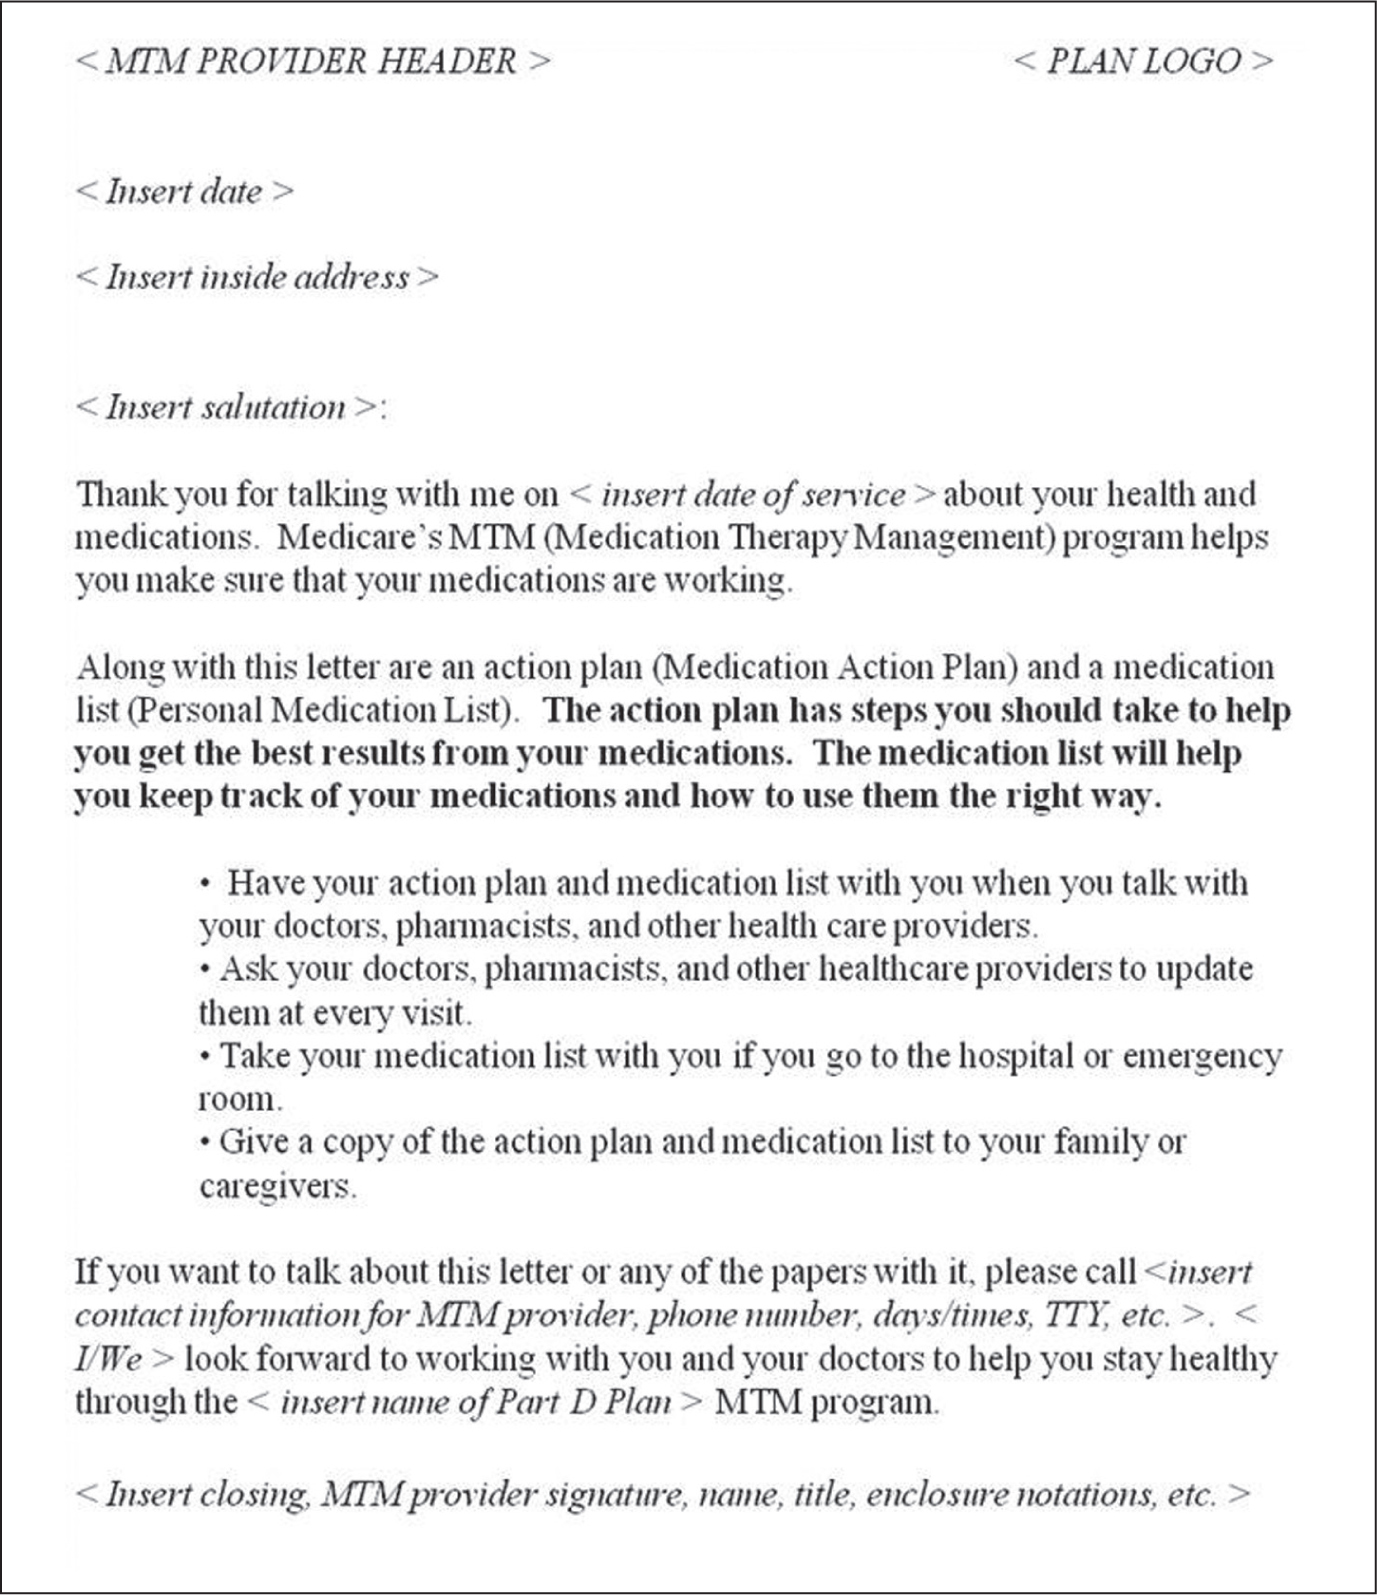 pediatric nurse cover letter Nurse cover letter example for professional with job experience as registered nurse this works as a good guide for anyone in nursing or related health care pro.